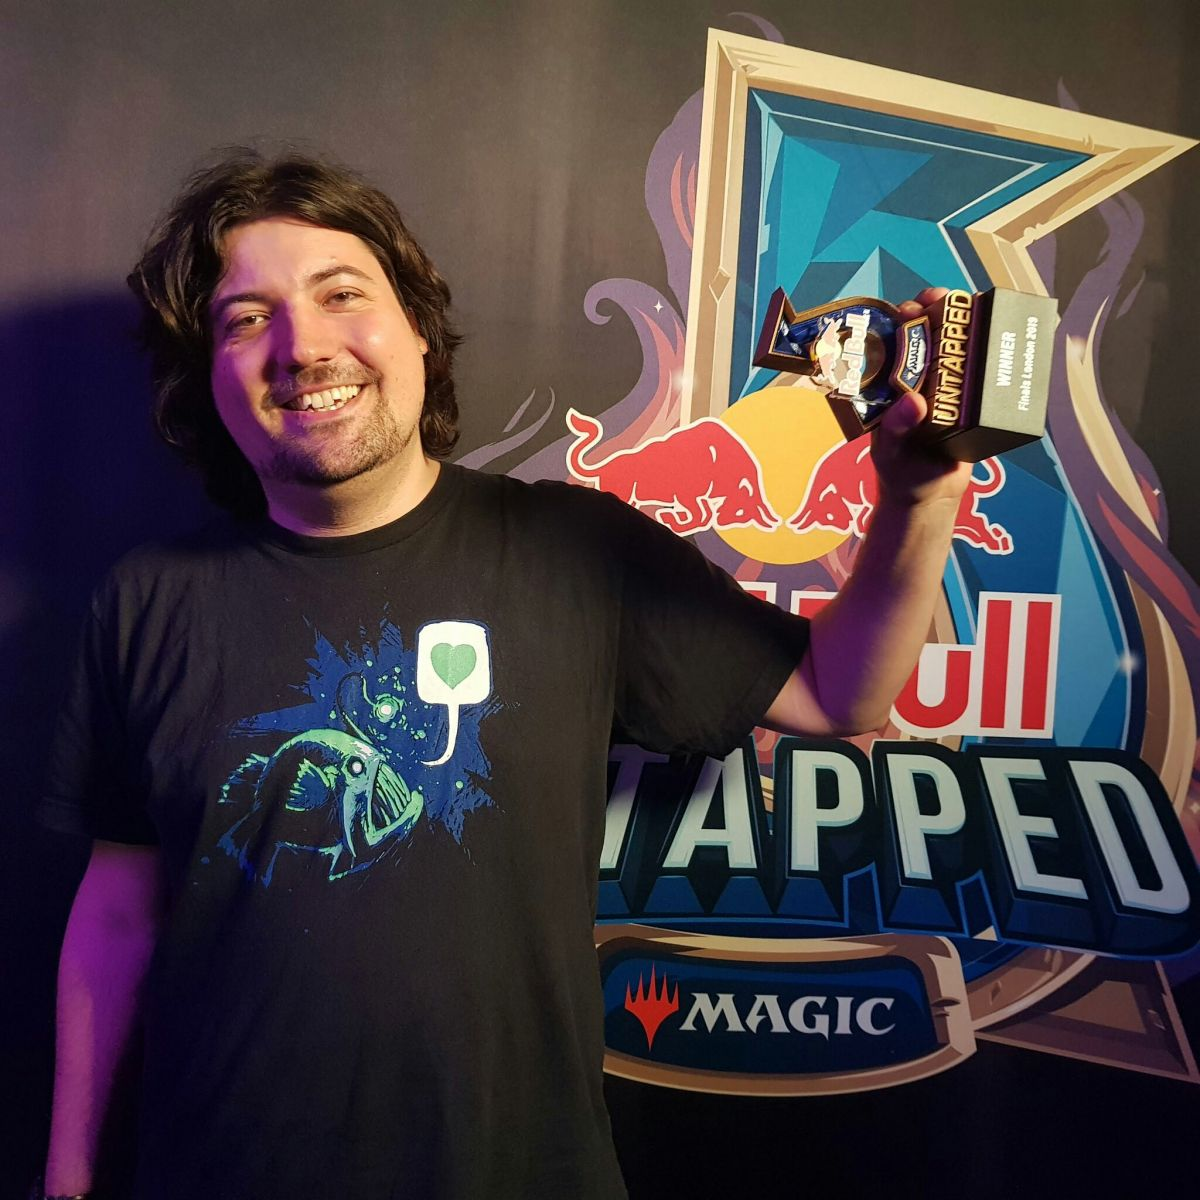 Campeão do Red Bull Untapped